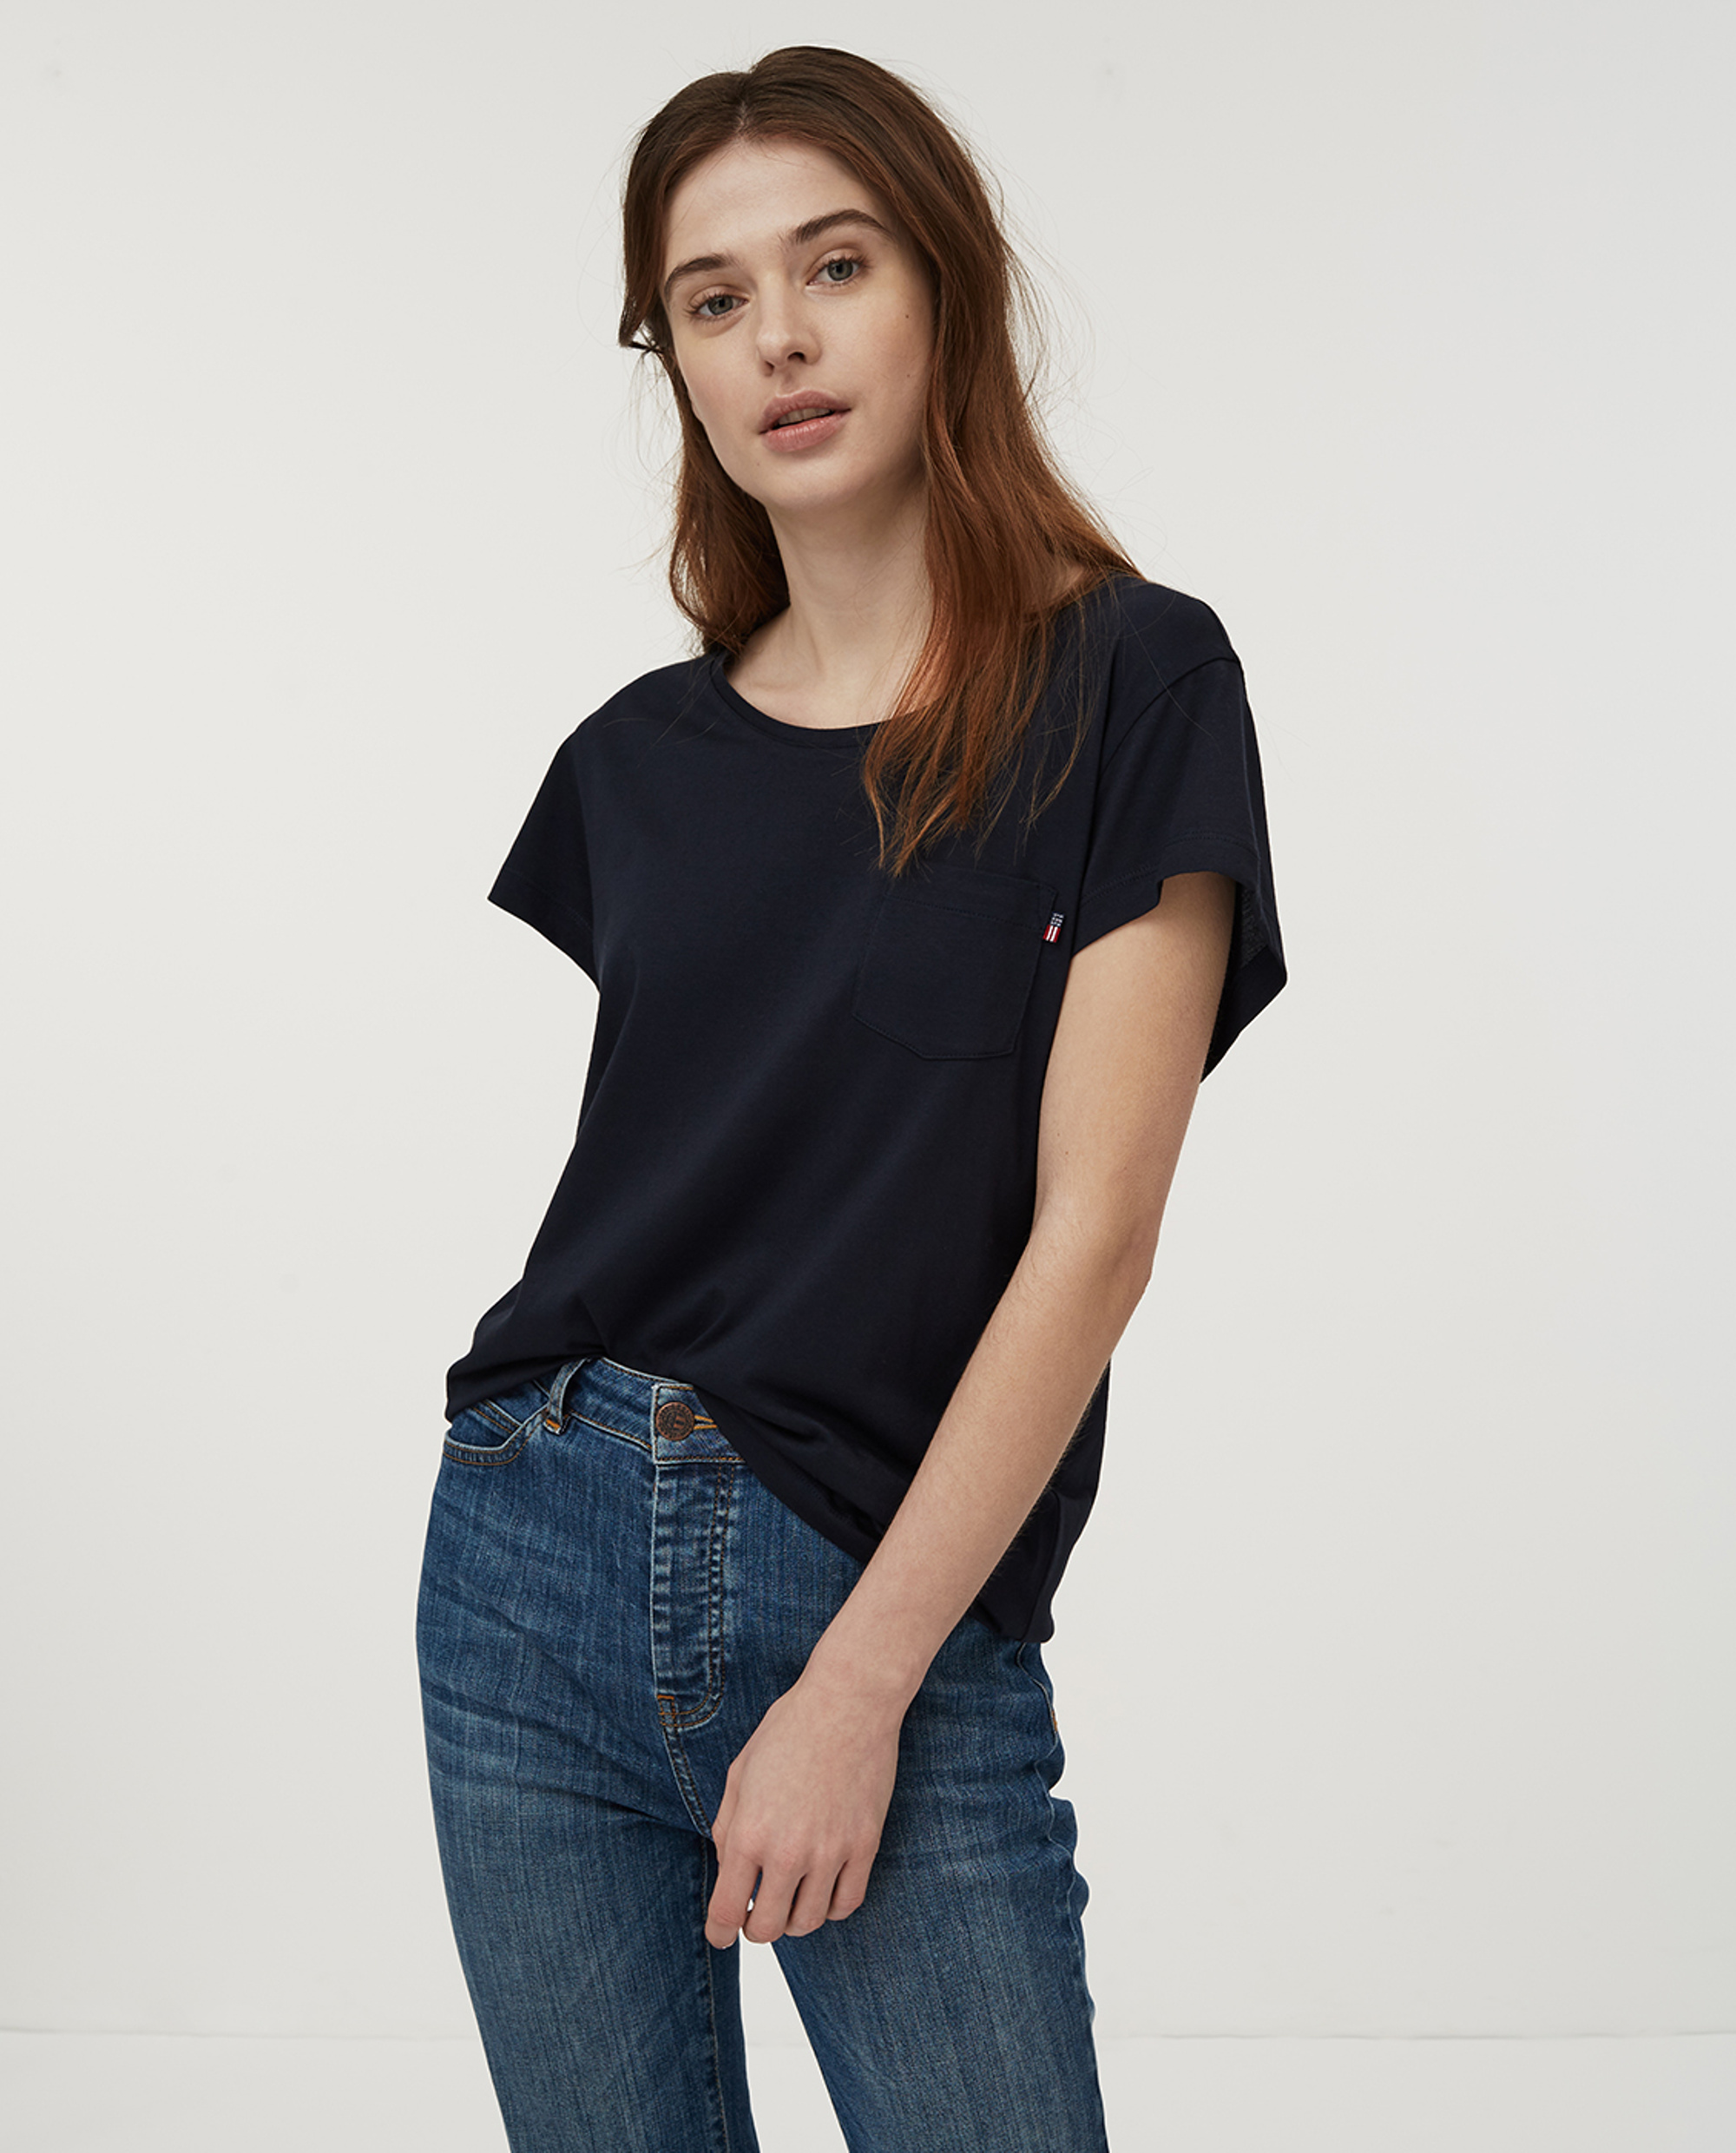 Ashley Jersey Tee, Dark Blue